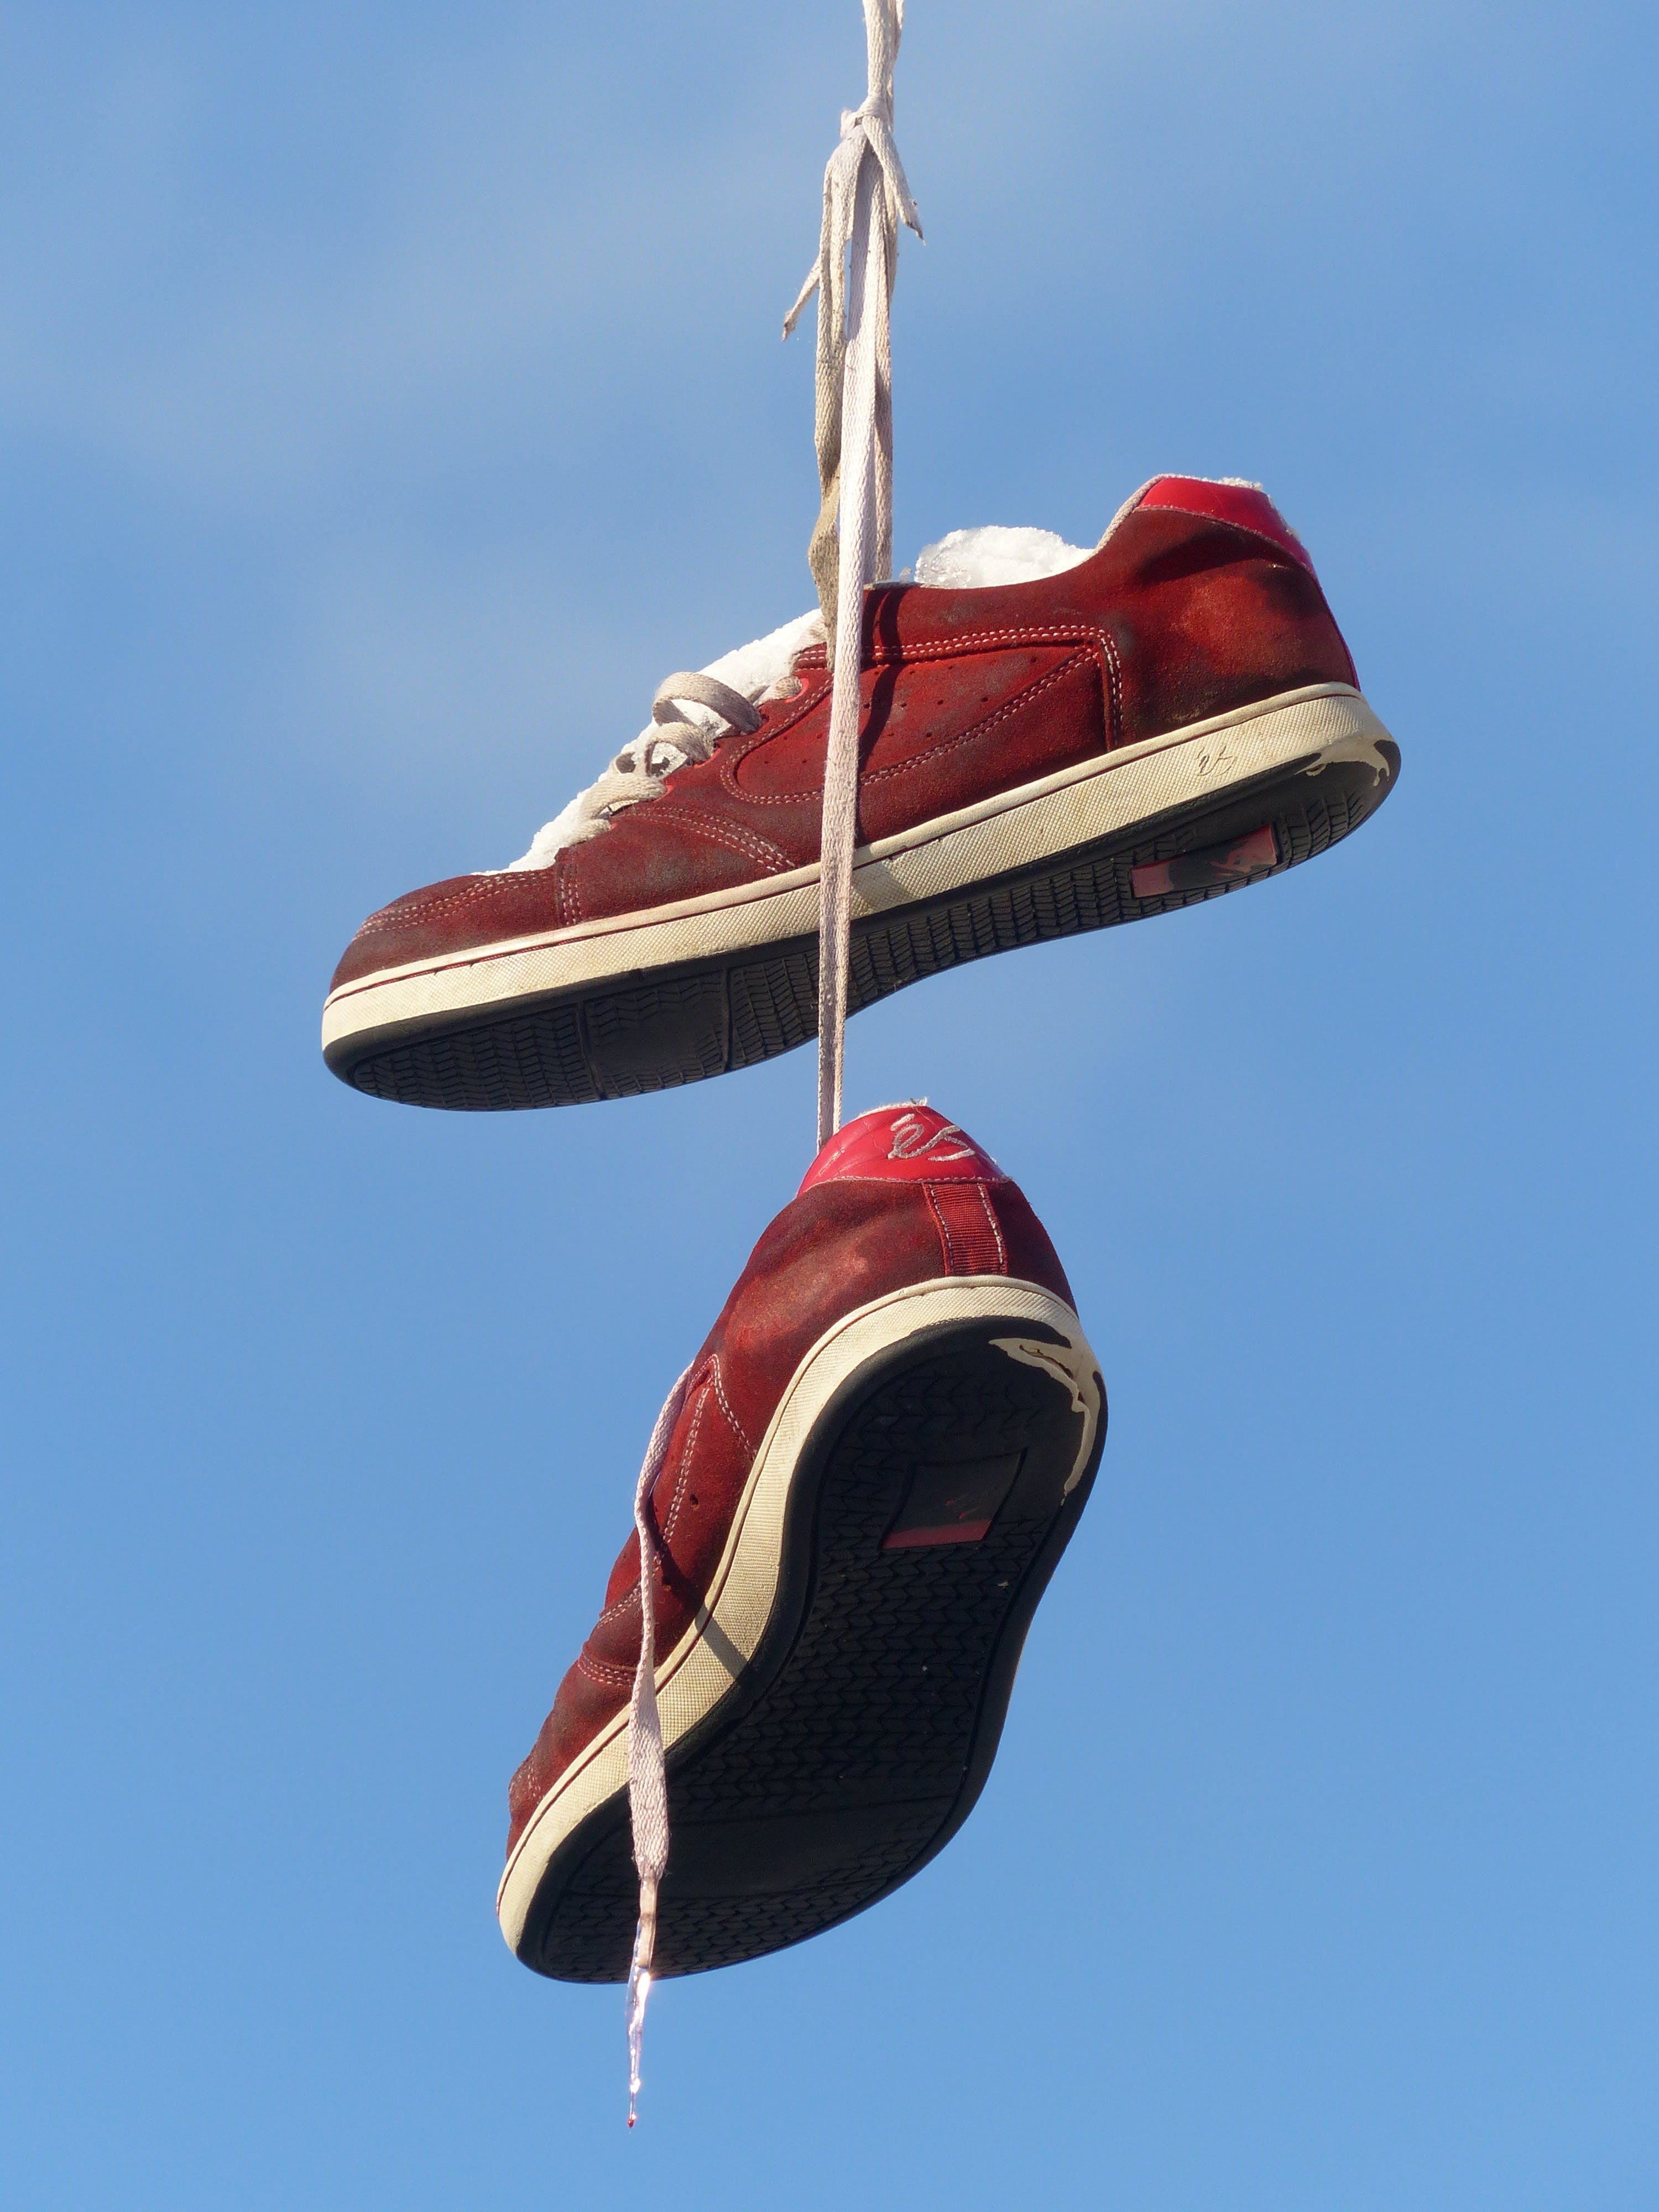 Red and White Hanging Sneakers during Daytime